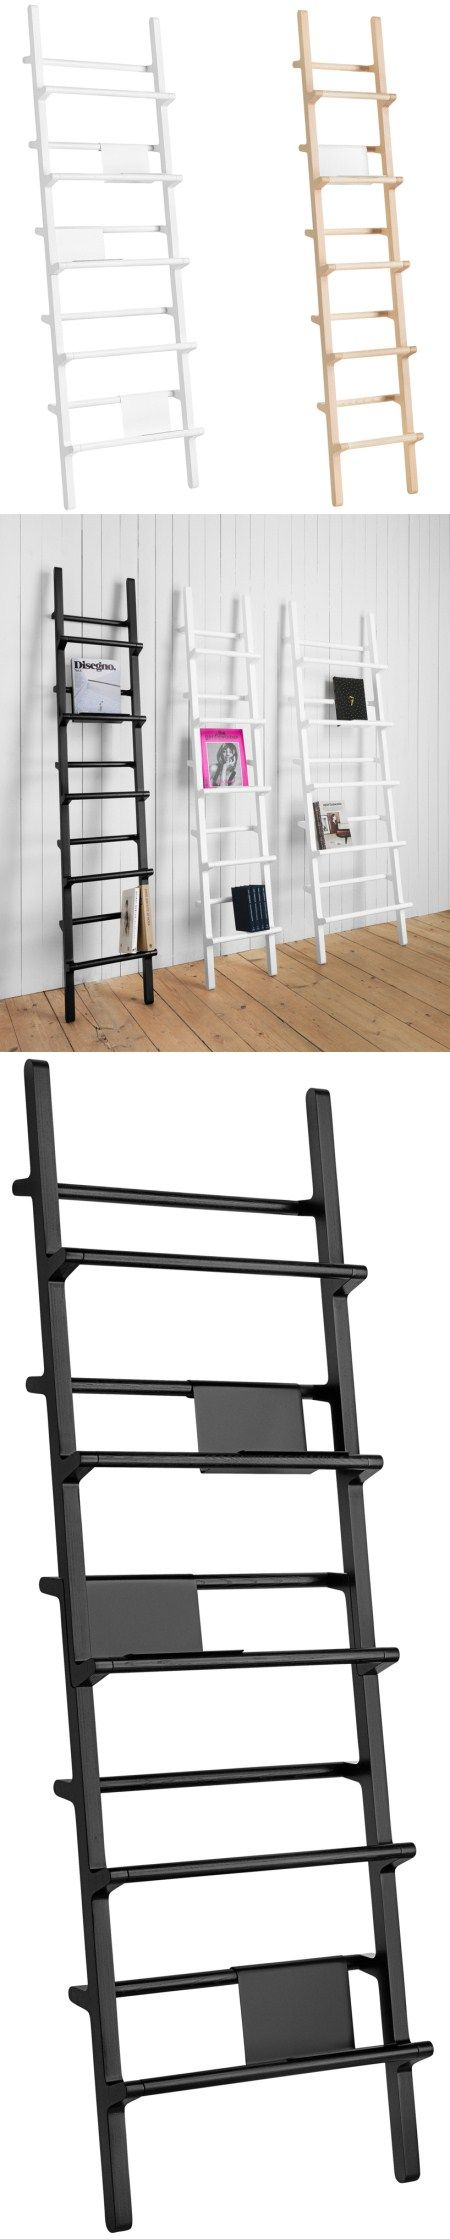 Multi-purpose ladder bookshelf